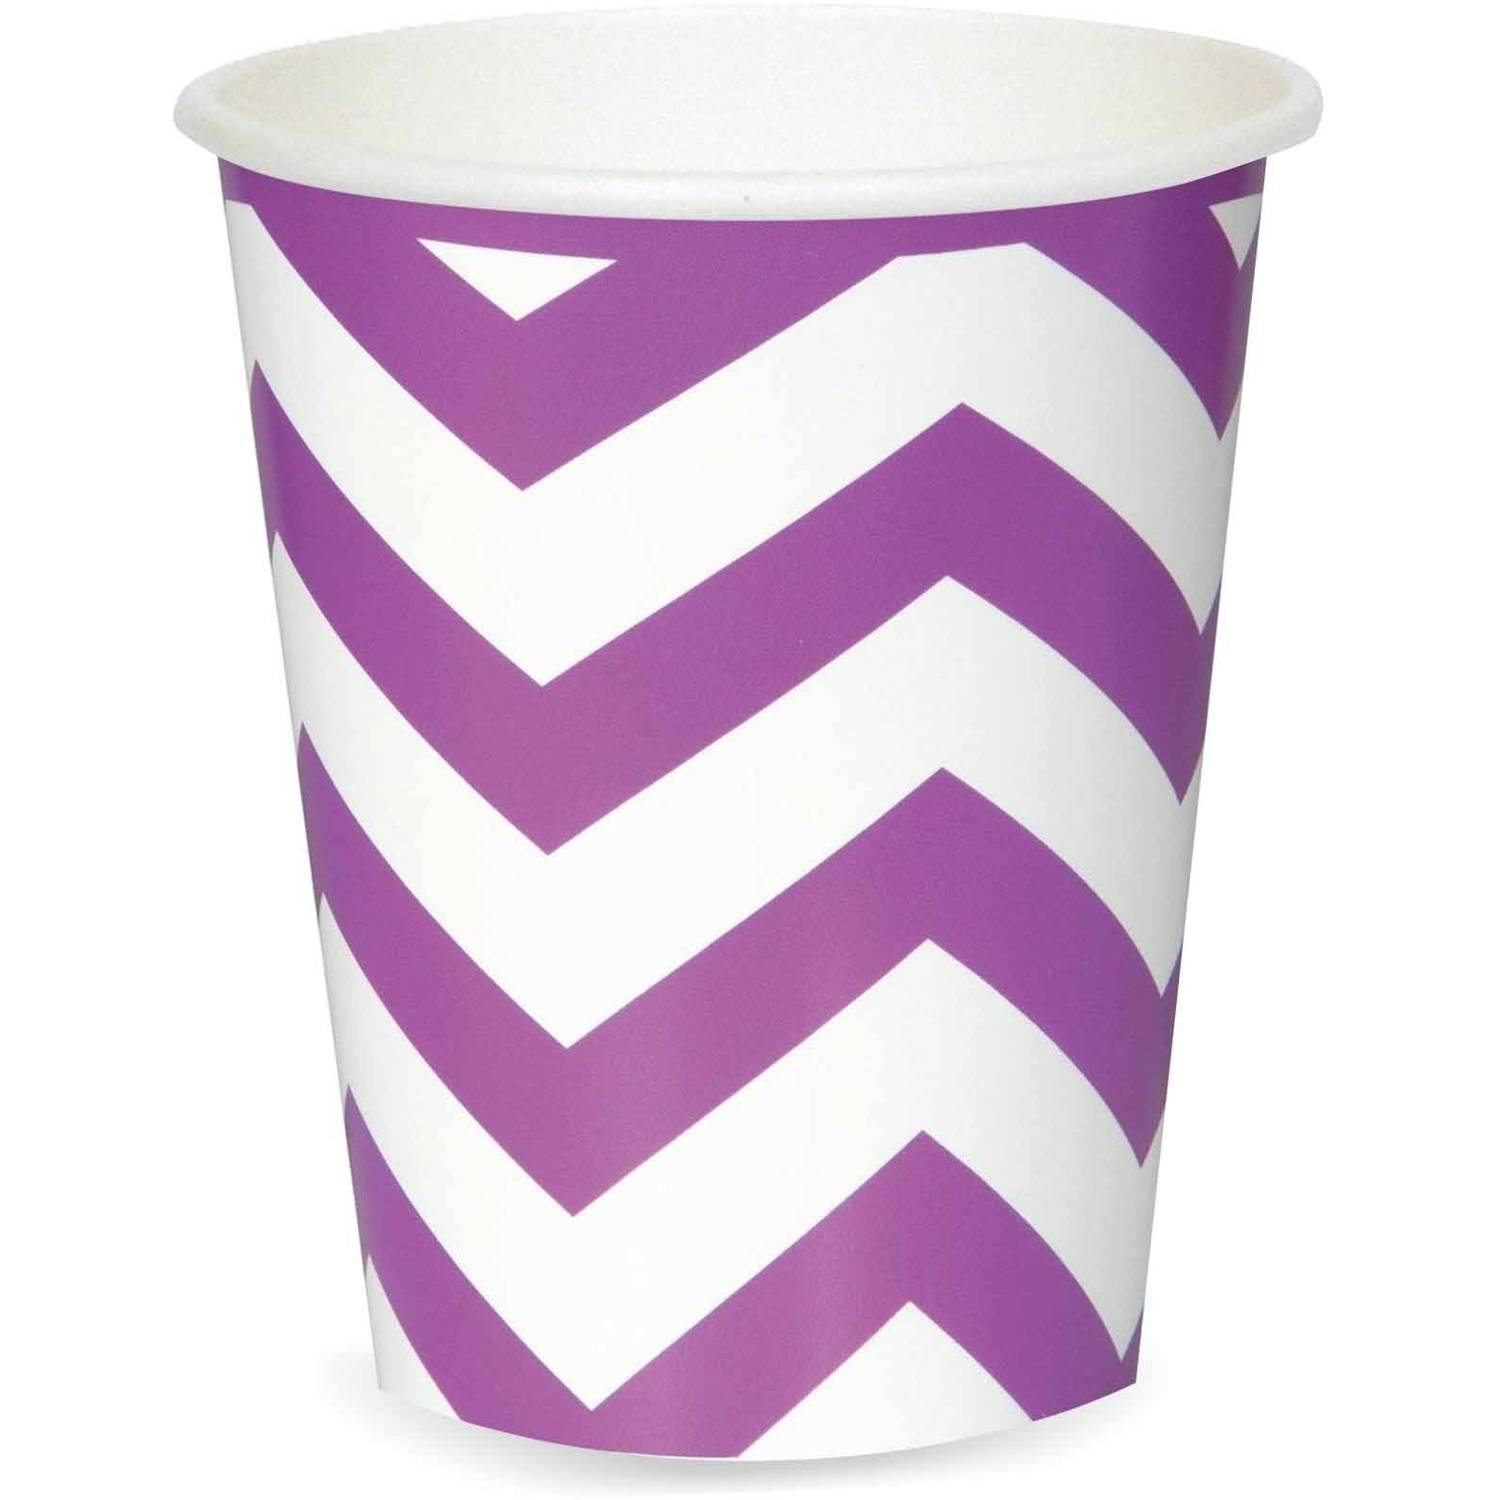 12oz Chevron Paper Cups, Pretty Purple, 8ct